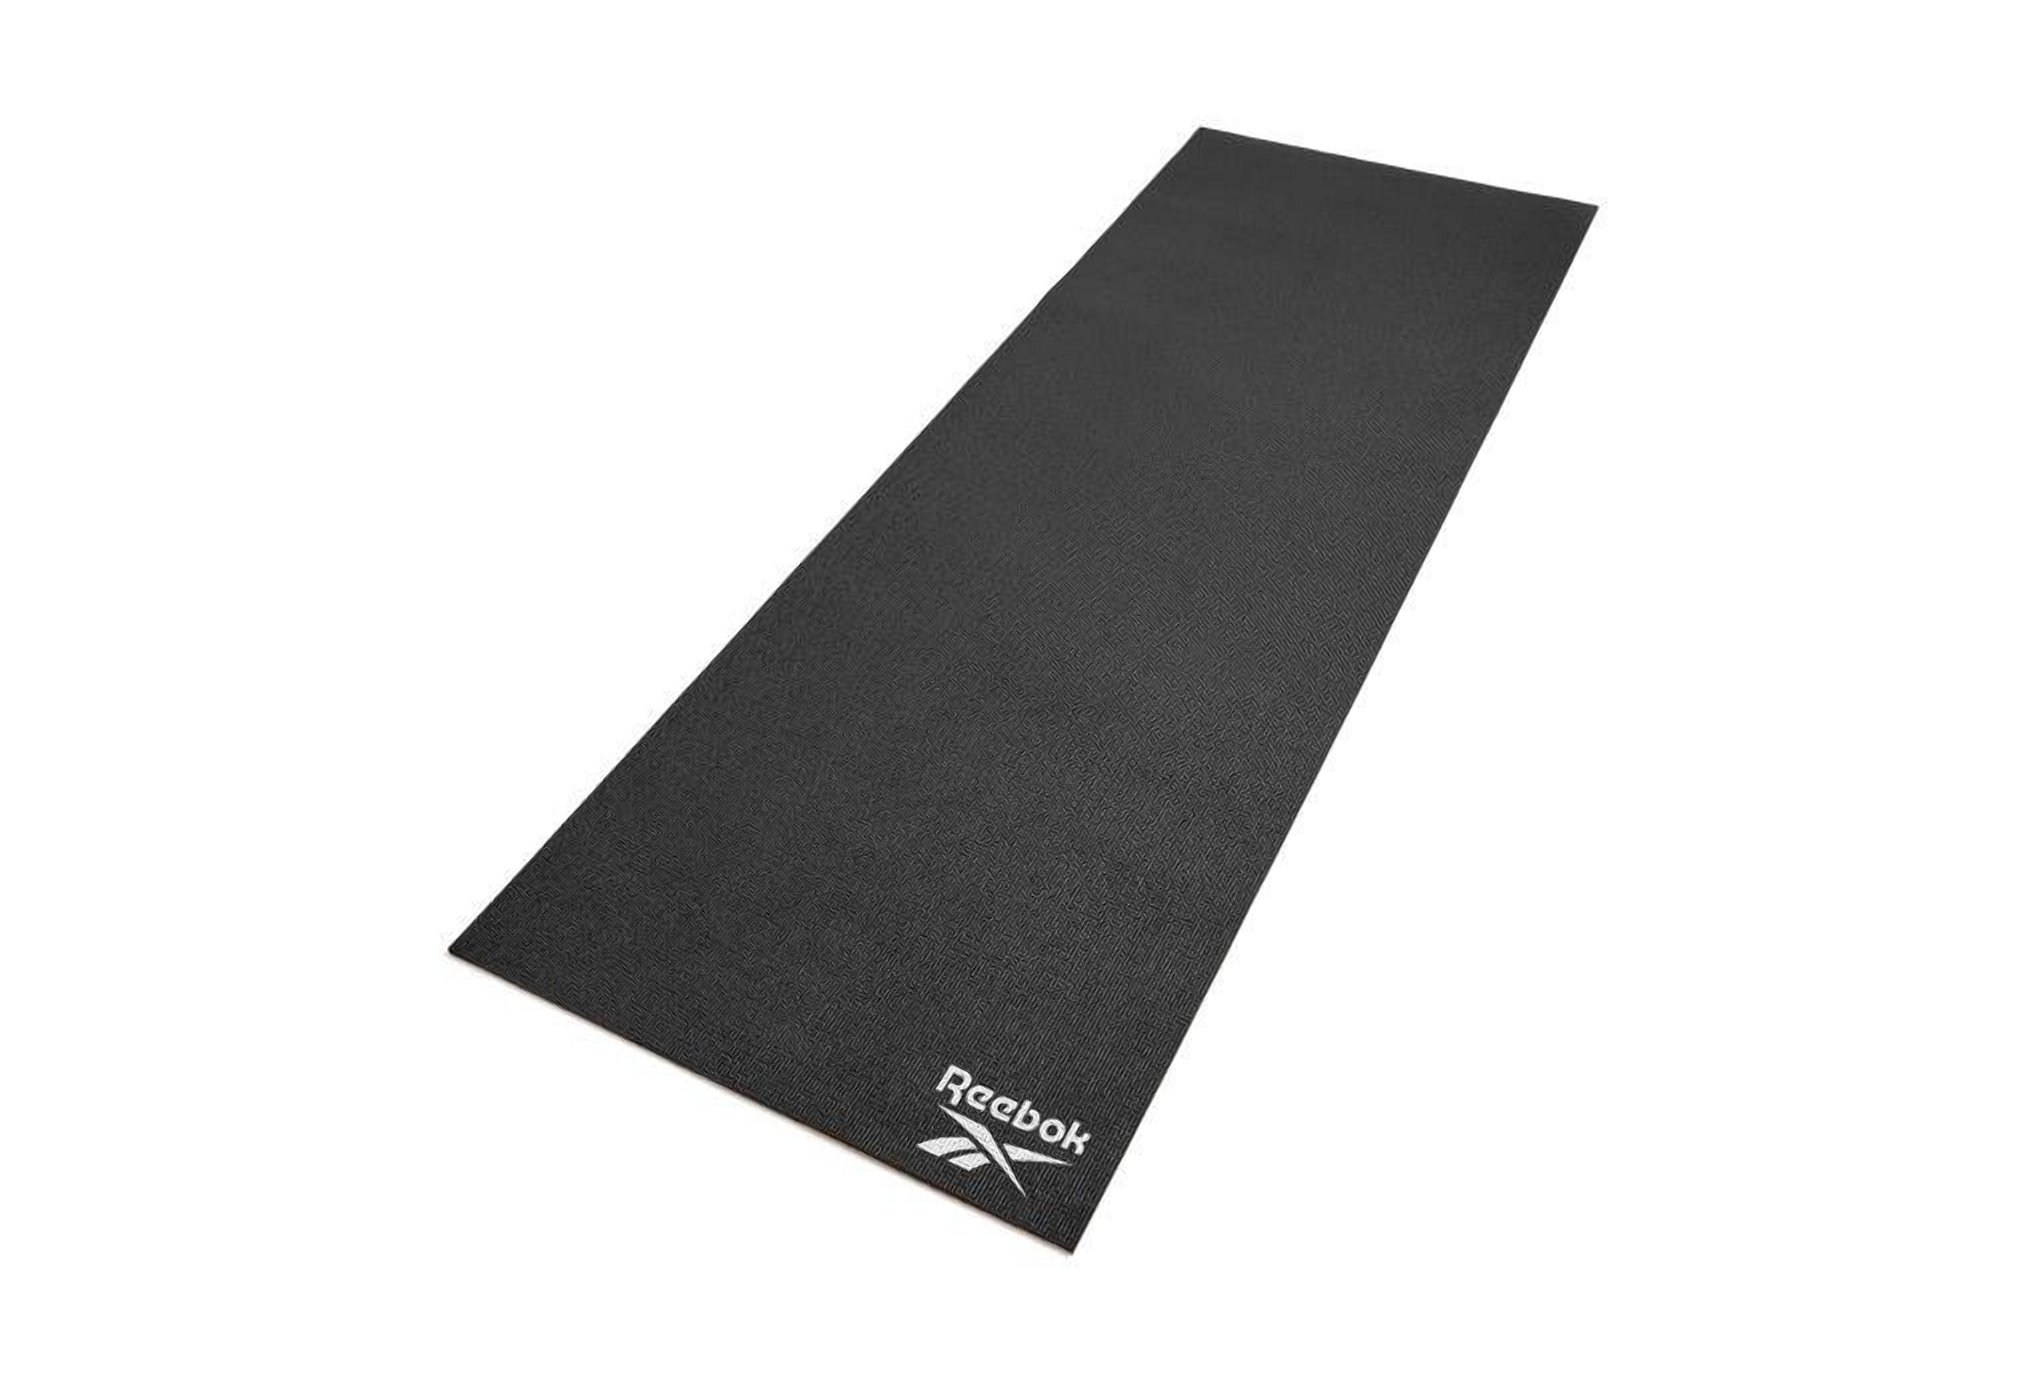 Reebok Double Sided Yoga Mat - 6 mm Training